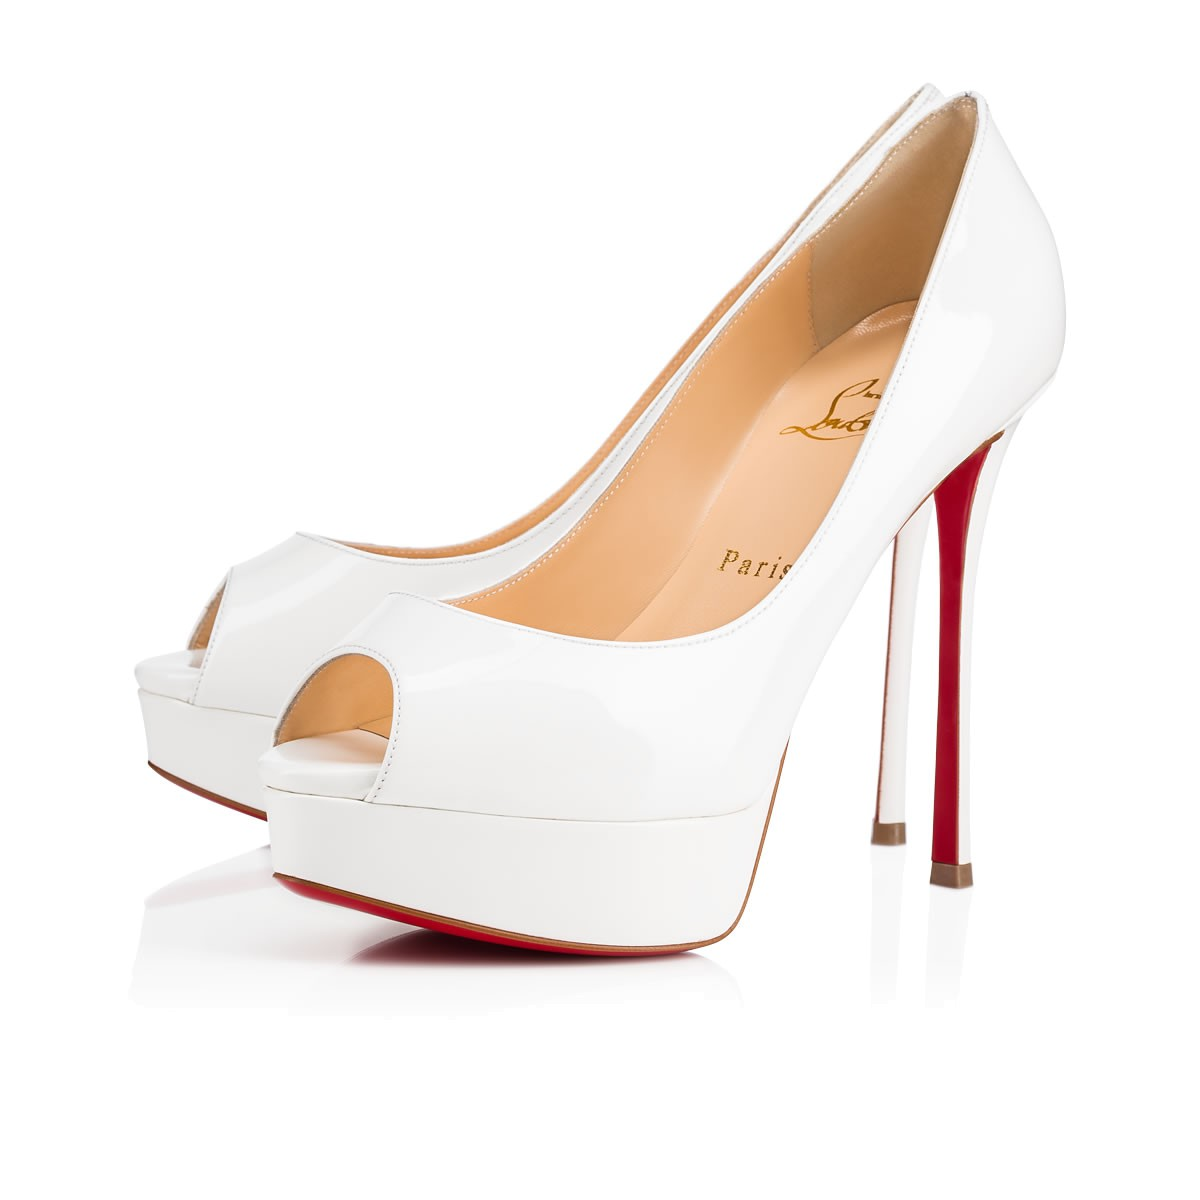 a3ed66b77497 Christian Louboutin Archives - Page 6 of 16 - Brands Blogger